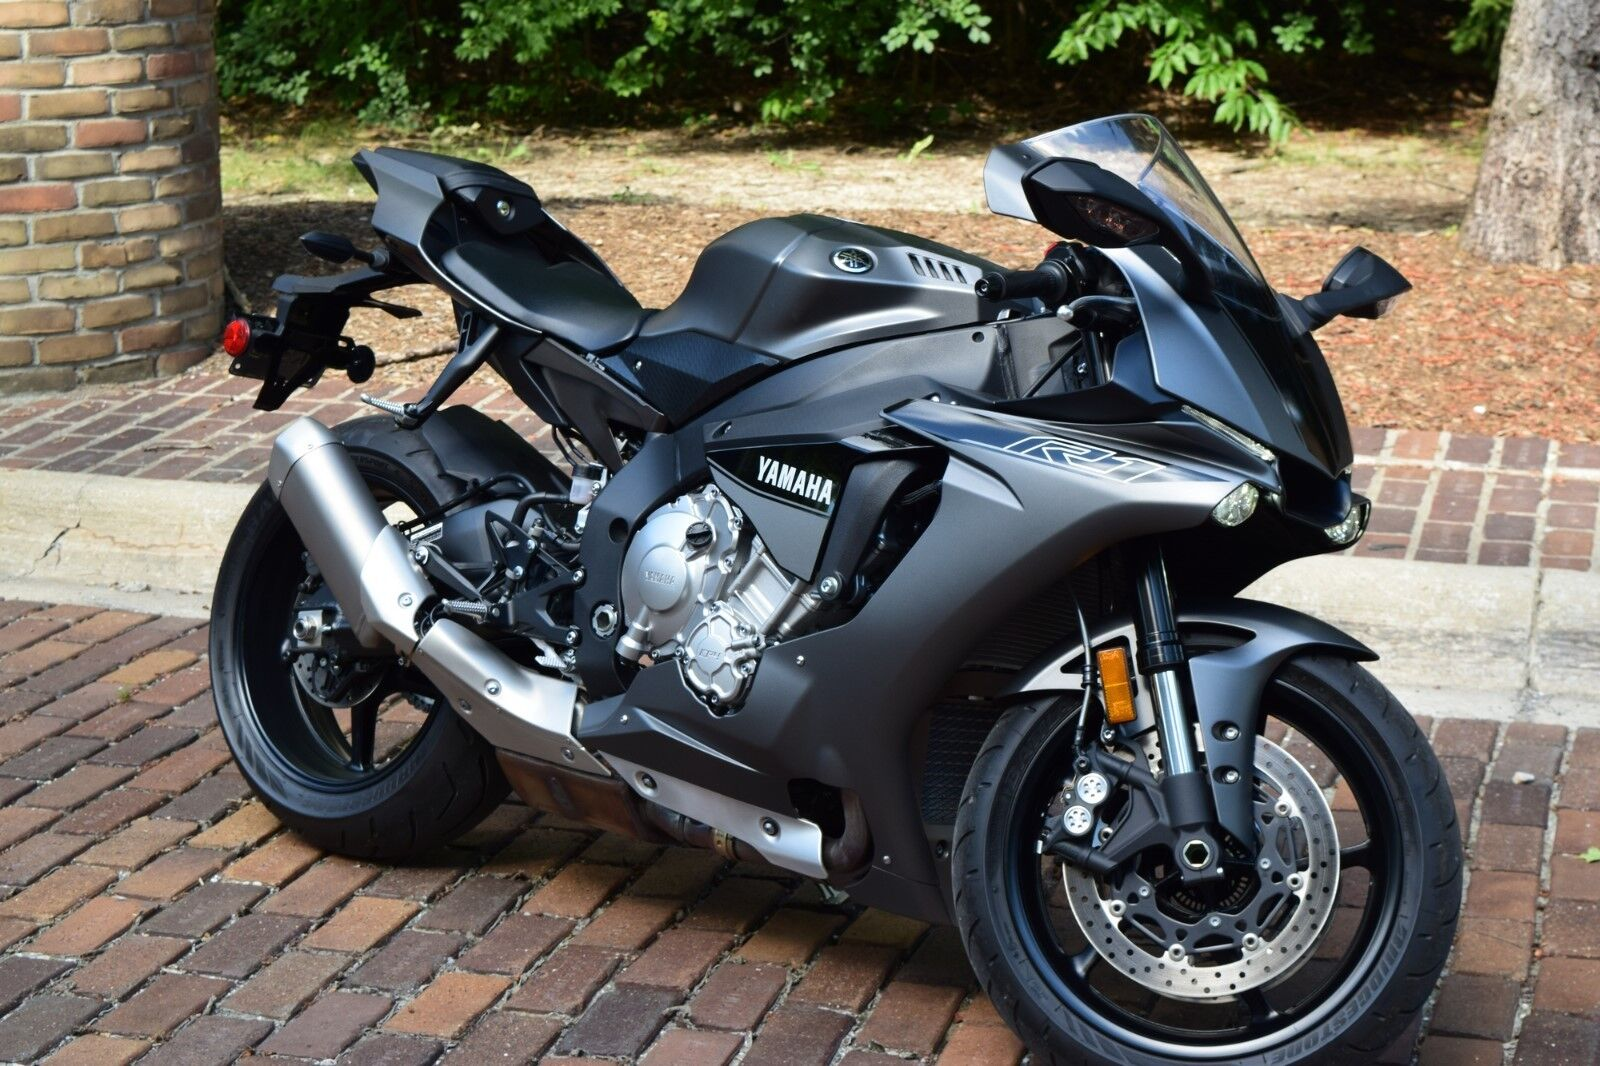 2016 yamaha yzf r1 1000cc 500 miles like new no reserve used yamaha yzf r for sale. Black Bedroom Furniture Sets. Home Design Ideas